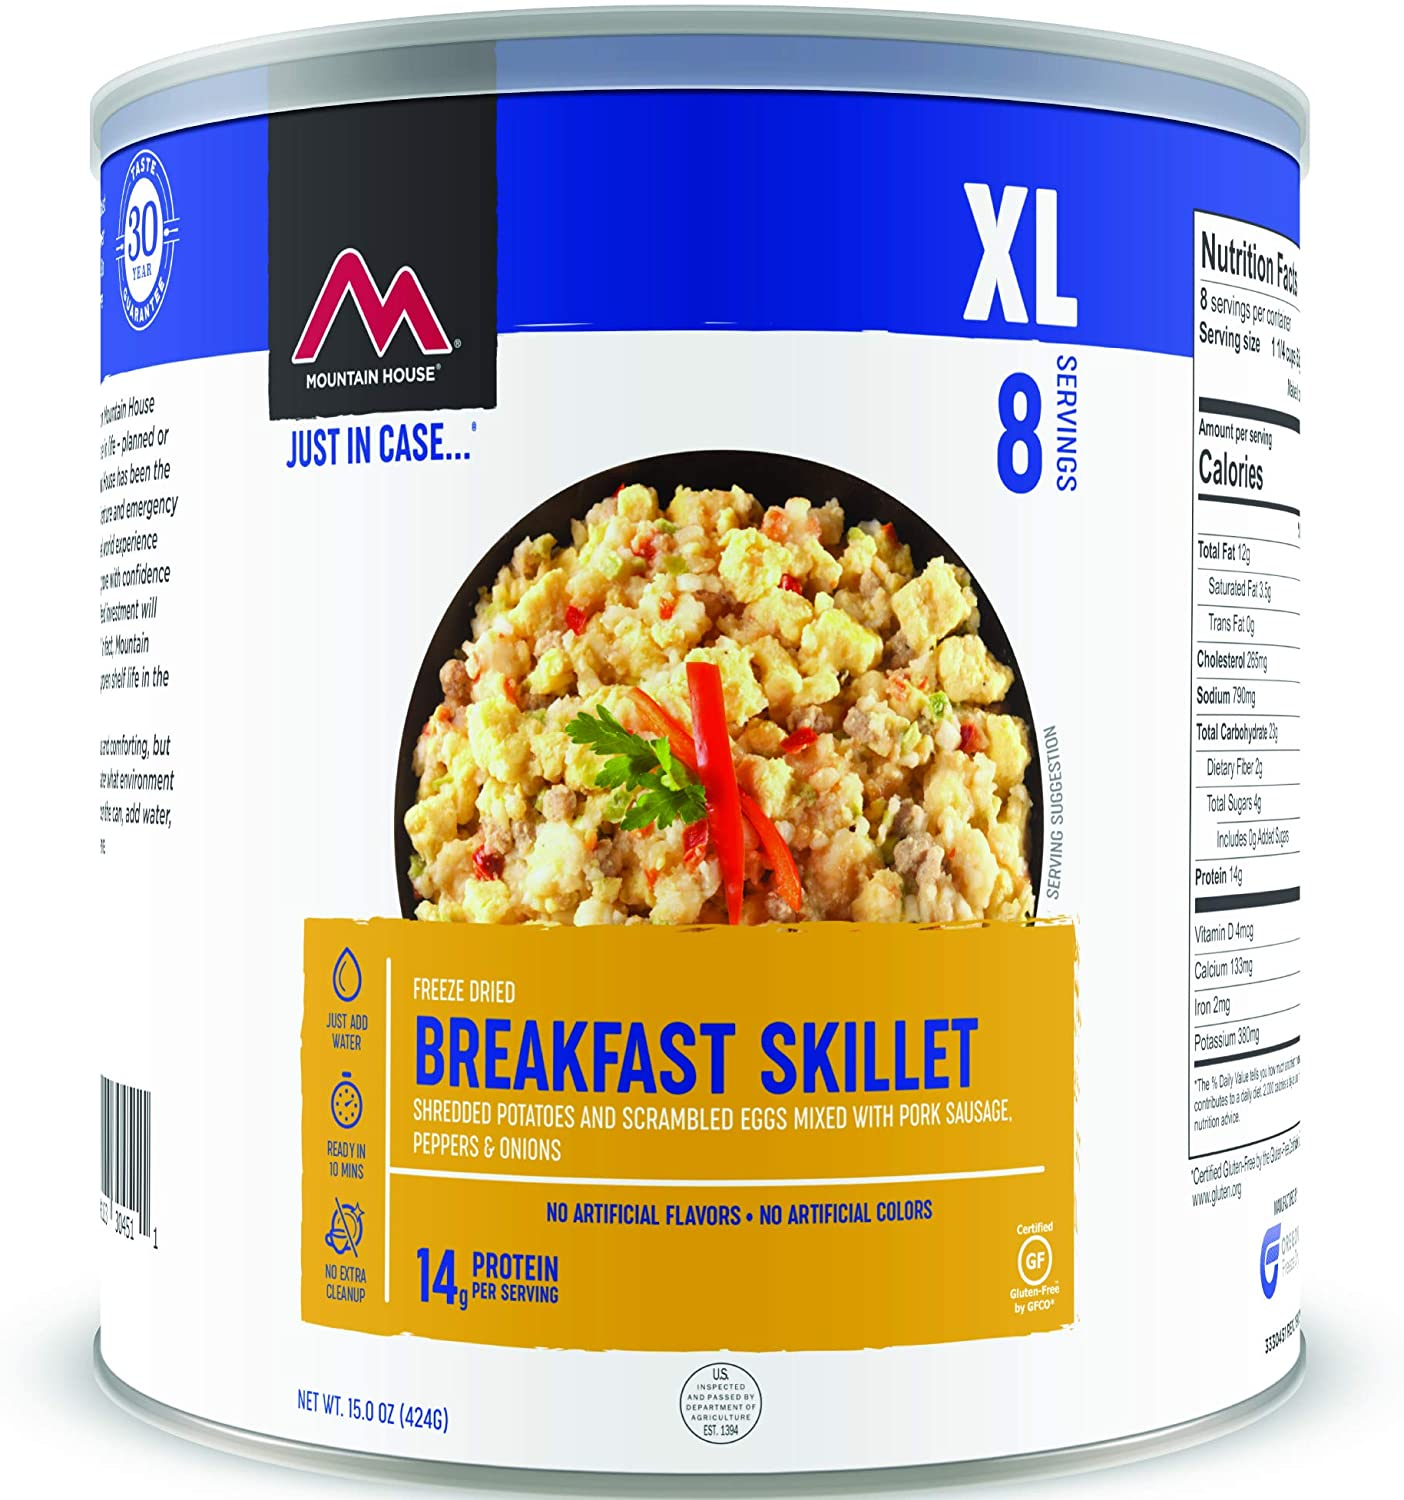 A can of mountain house breakfast skillet.